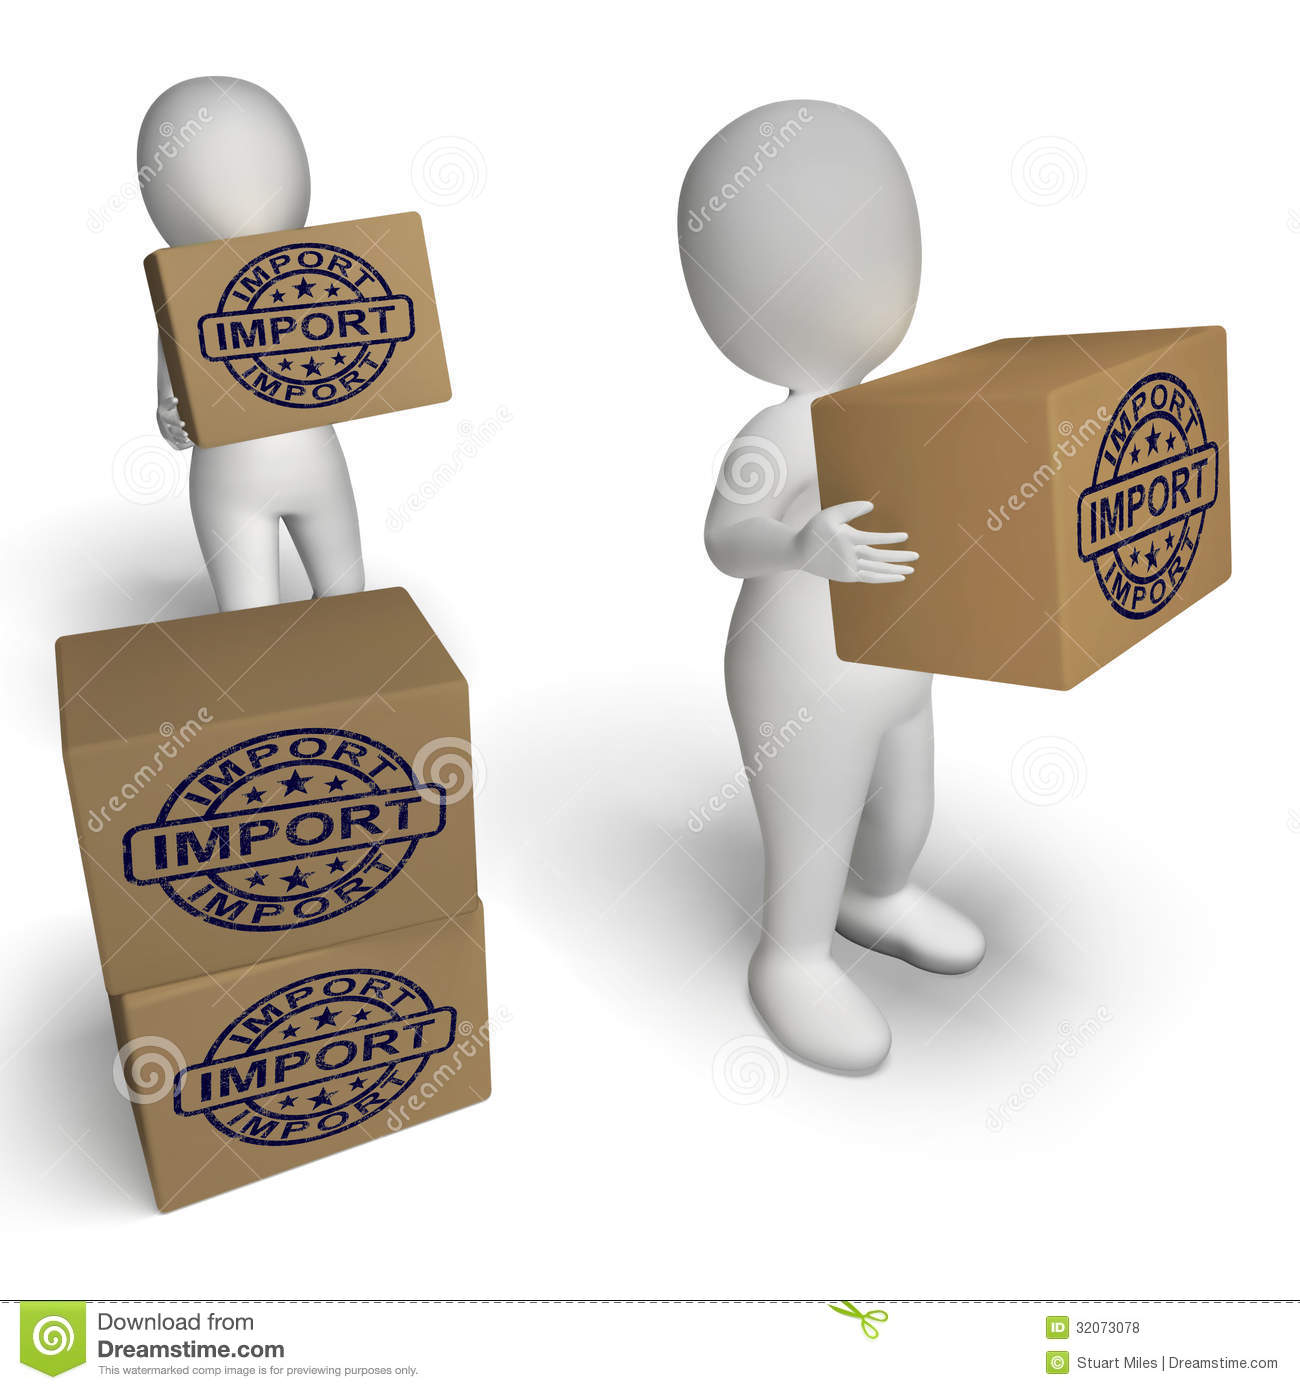 import stamp on boxes shows importing goods and commodities